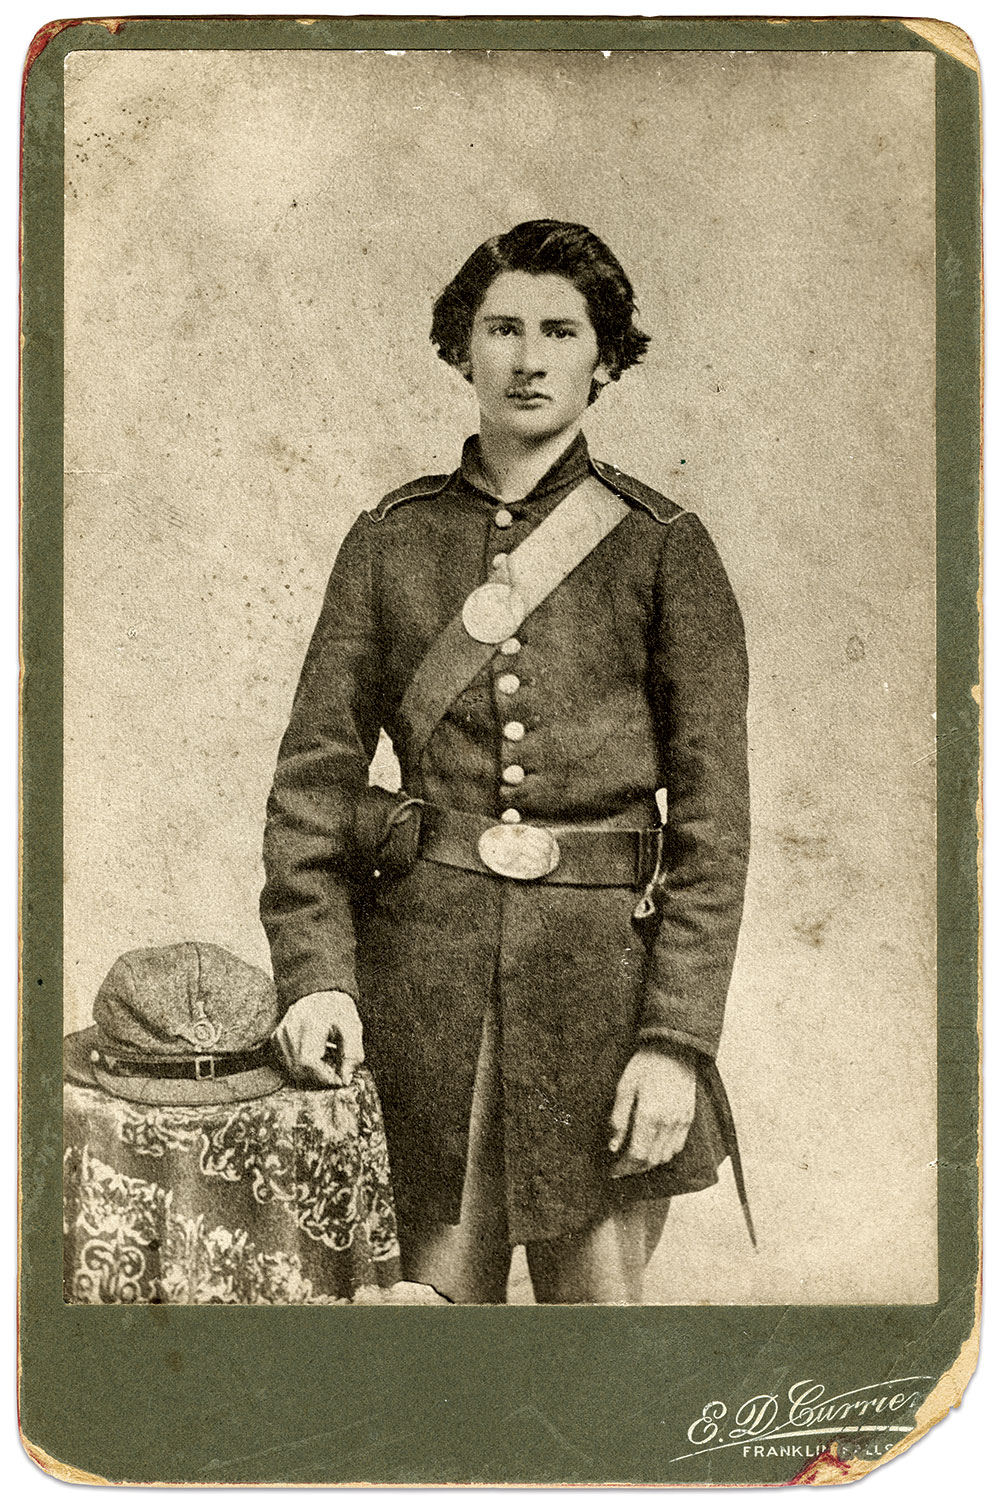 """Photographed in 1861, 19-year-old Pvt. Arthur H. Perkins of Company I, 5th New Hampshire Infantry wears an example of the frock coat of """"shoddy"""" flannel supplied to his regiment by merchant tailors Lincoln & Shaw of Concord. Placed carefully on the table by his side, his Havelock cap has pinned at its front a small looped horn insignia with regimental numeral """"5"""" inset and company letter """"I"""" above. The leather equipment for this regiment, including belts, cartridges boxes and cap pouches, was made by Solon S. Wilkinson, of Keene, N.H., who was reported in the Sentinel of that place on Oct. 17, 1861, to have """"employed from twenty to twenty-five hands in the work."""" Perkins was appointed second lieutenant on Nov. 1, 1863, and honorably discharged on Nov. 6, 1864, returning to his home in Danebury, N.H. Post-war cabinet card by Edward D. Currier of Franklin Falls, N.H. Ron Field Collection."""